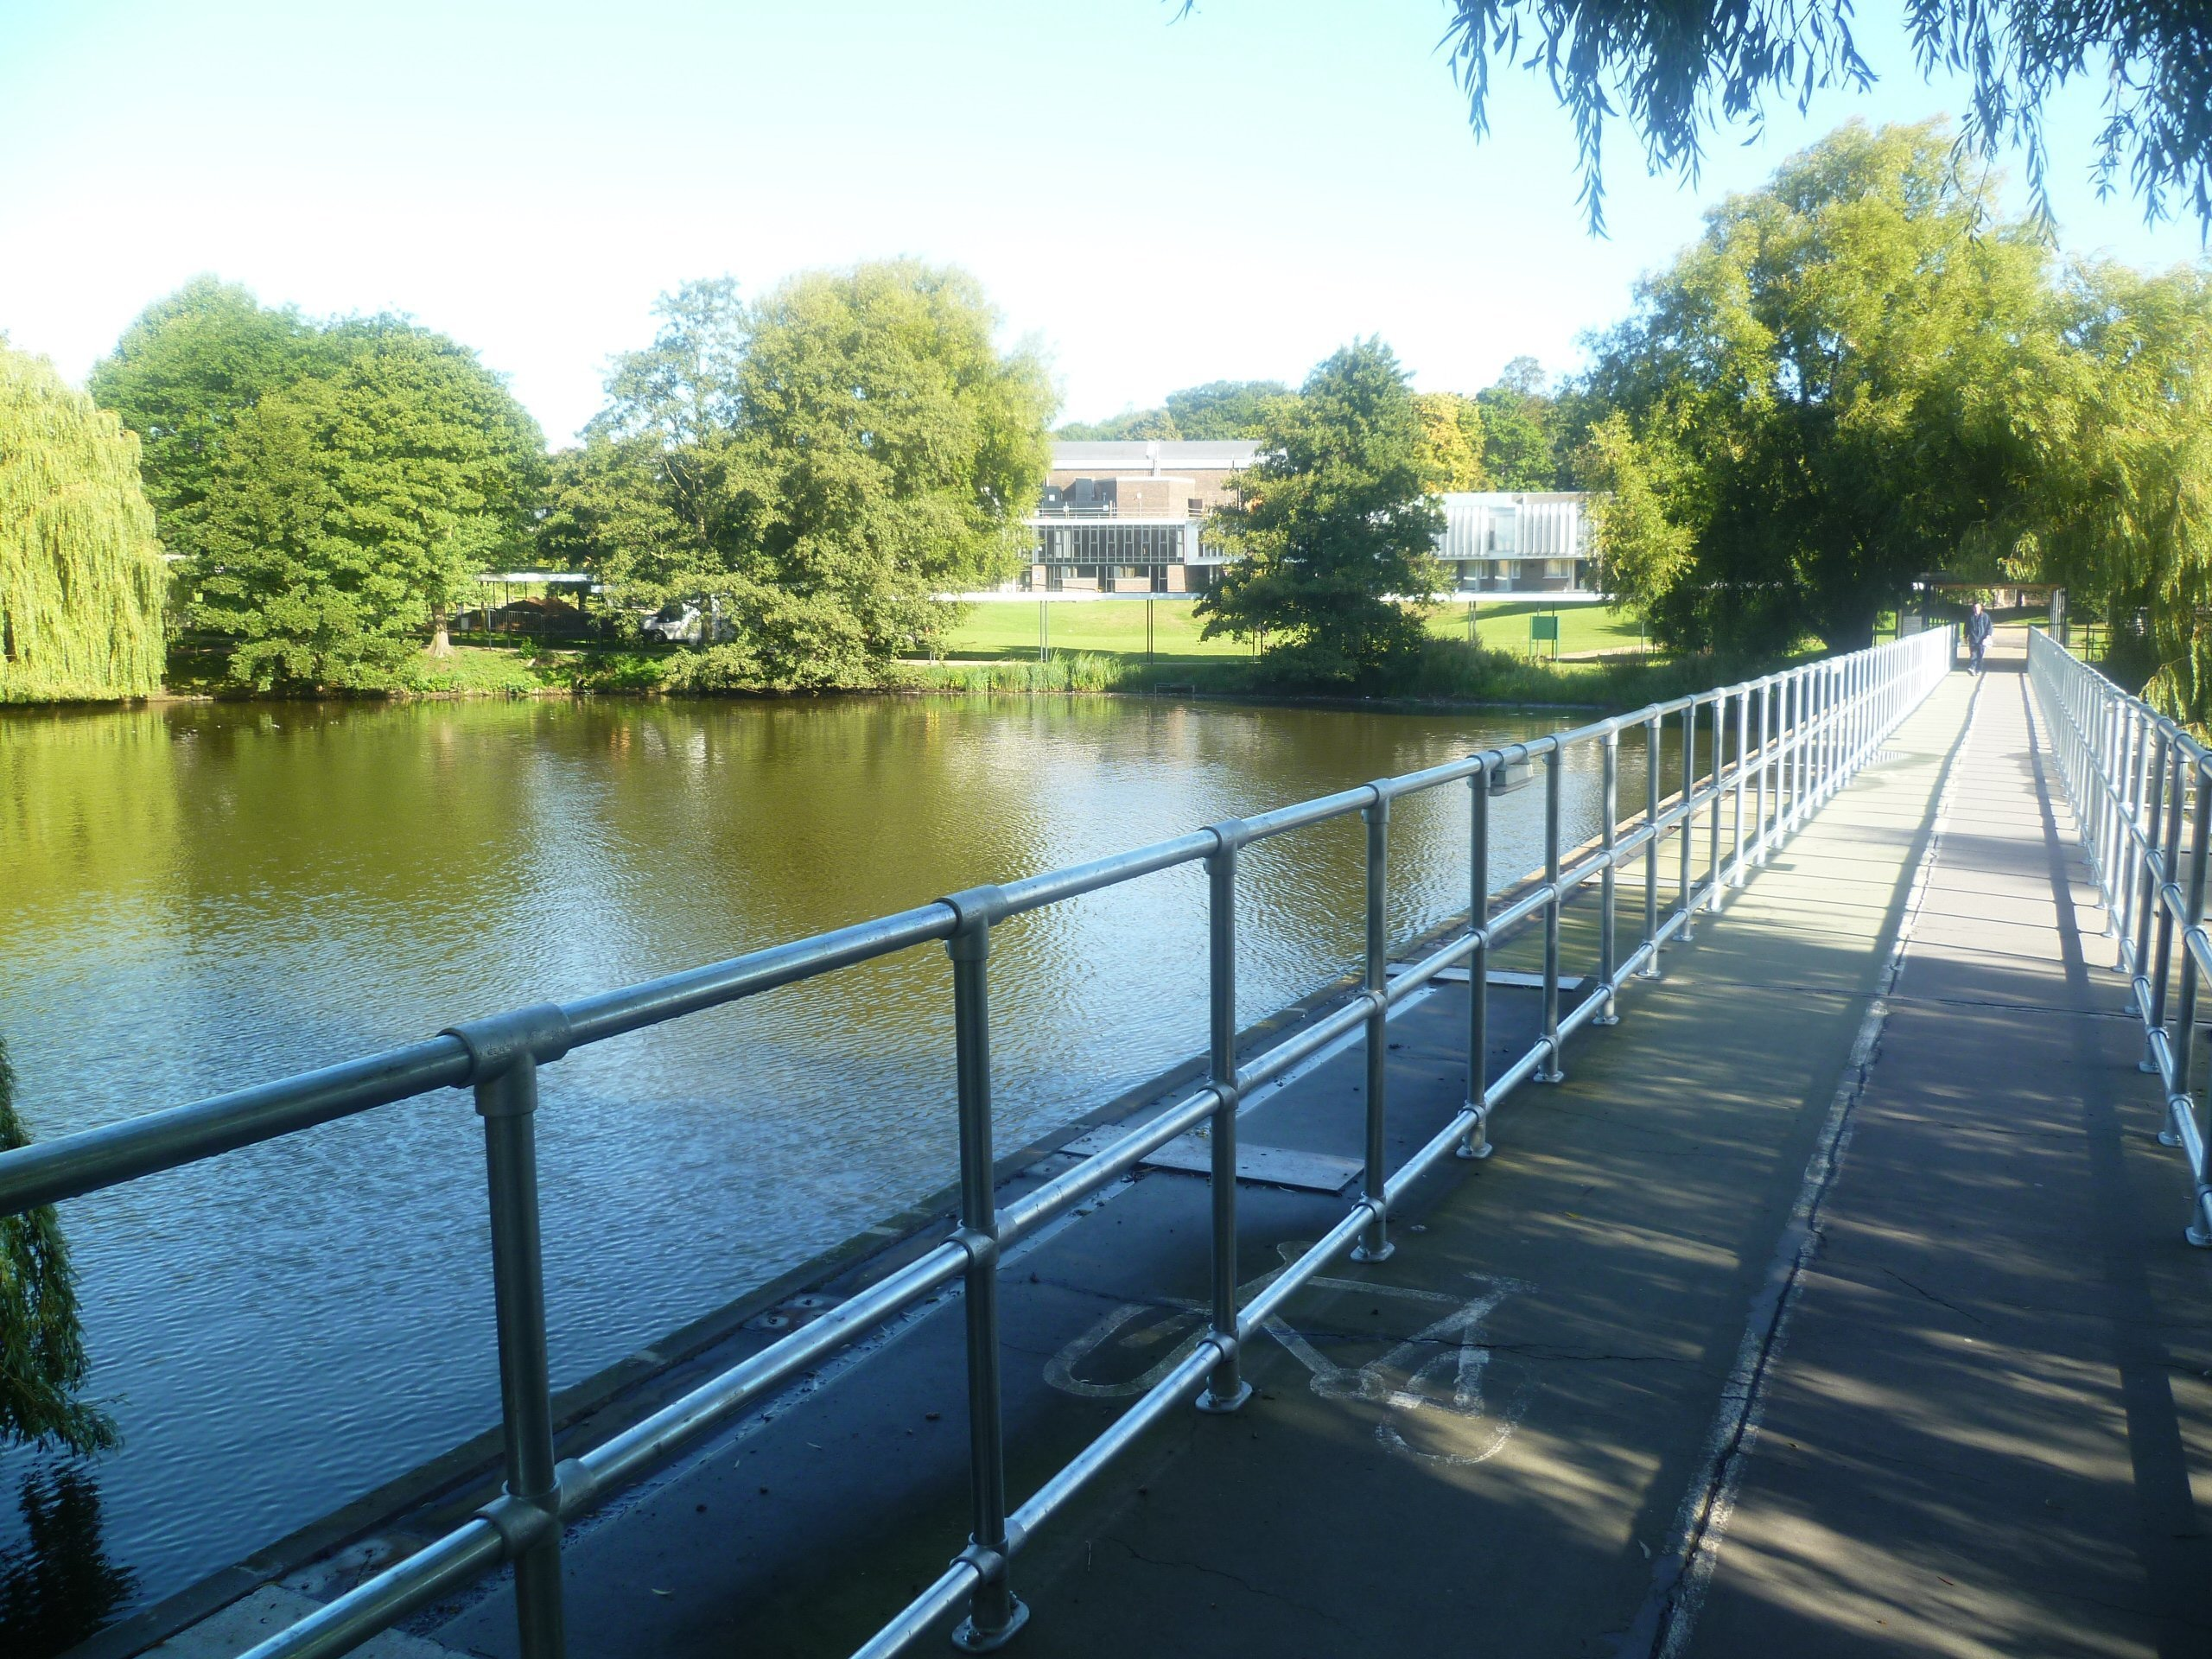 Kee Systems connects to the University of York